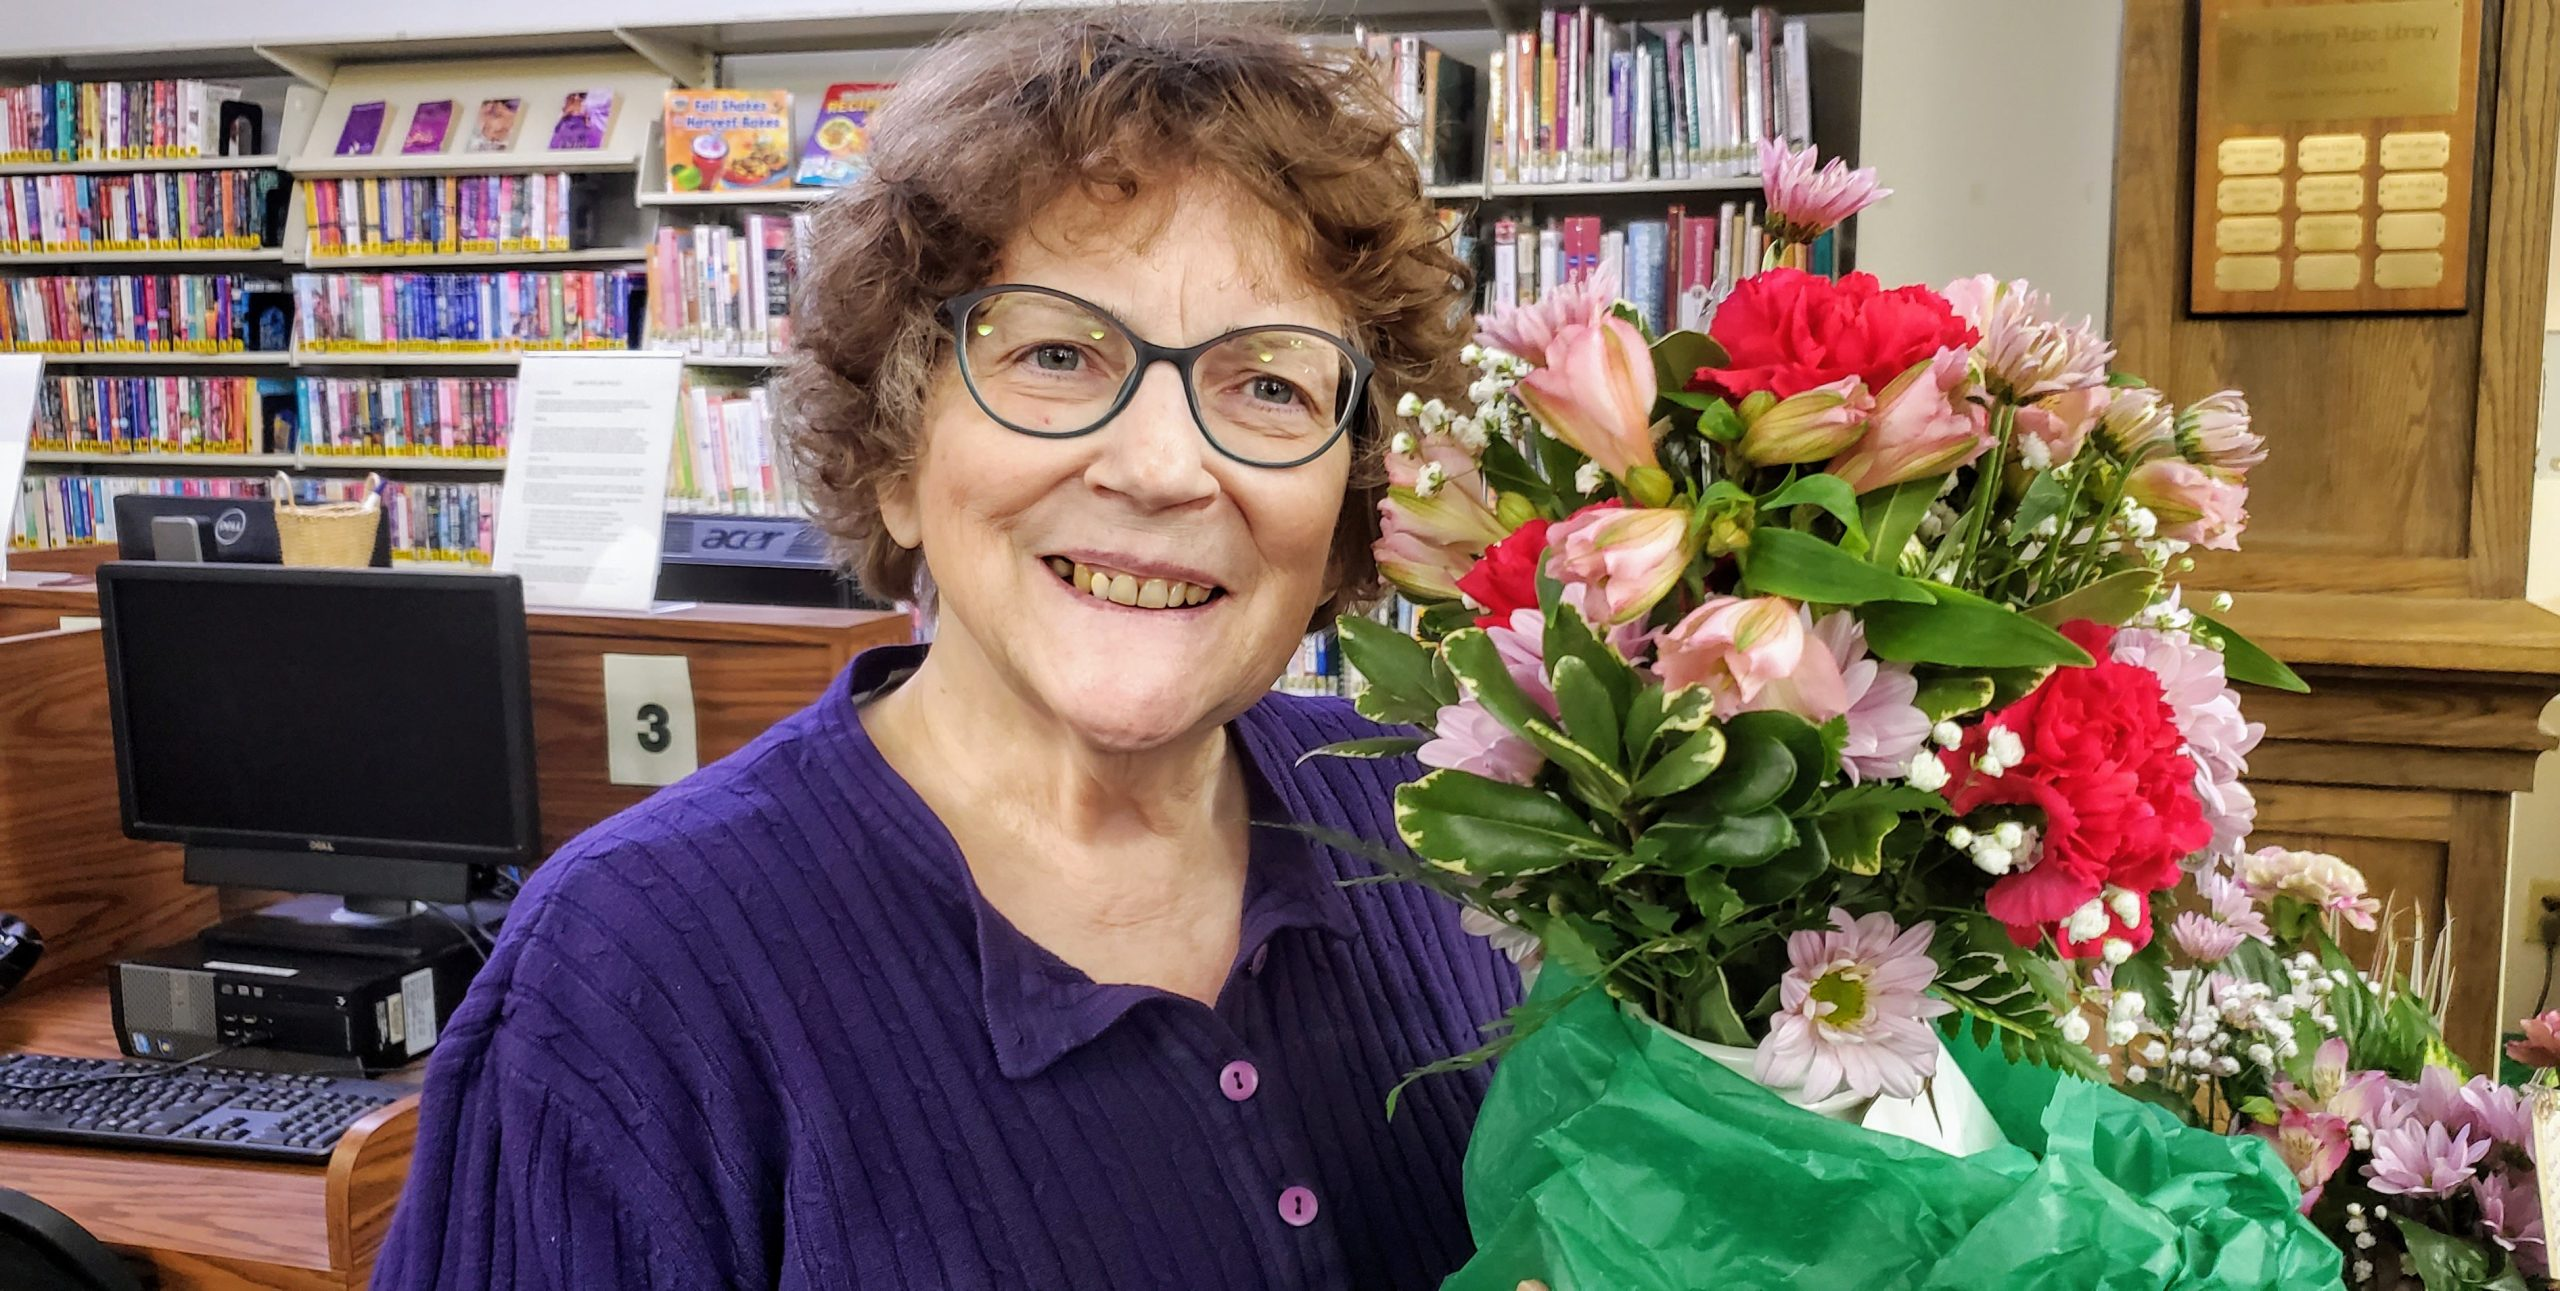 Casey O'Neill was recognized at the January meeting for her many years of service to the Friends of the Library.